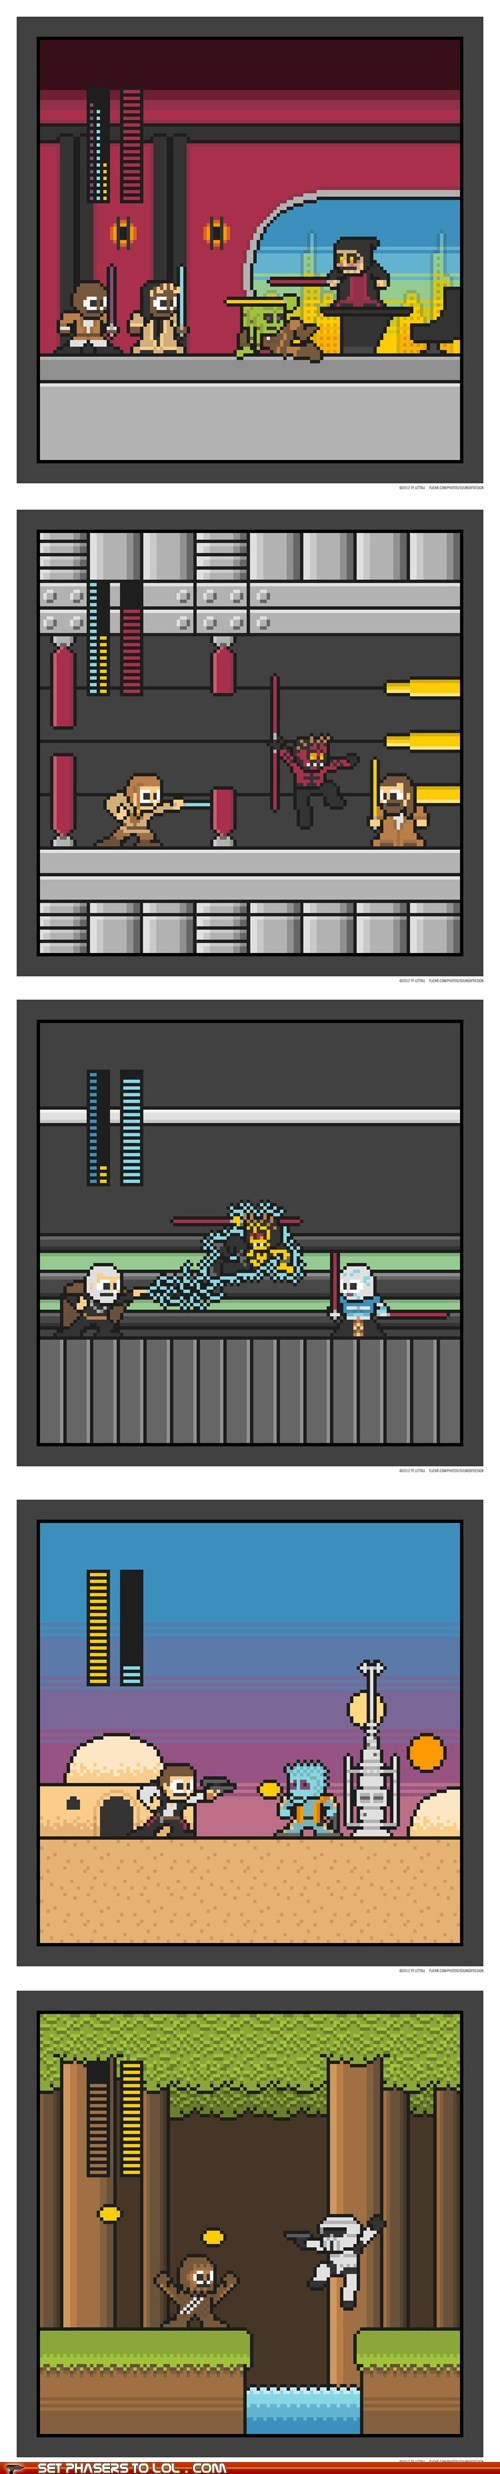 8 bit boss battles Fan Art mashup mega man NES star wars - 6578206464